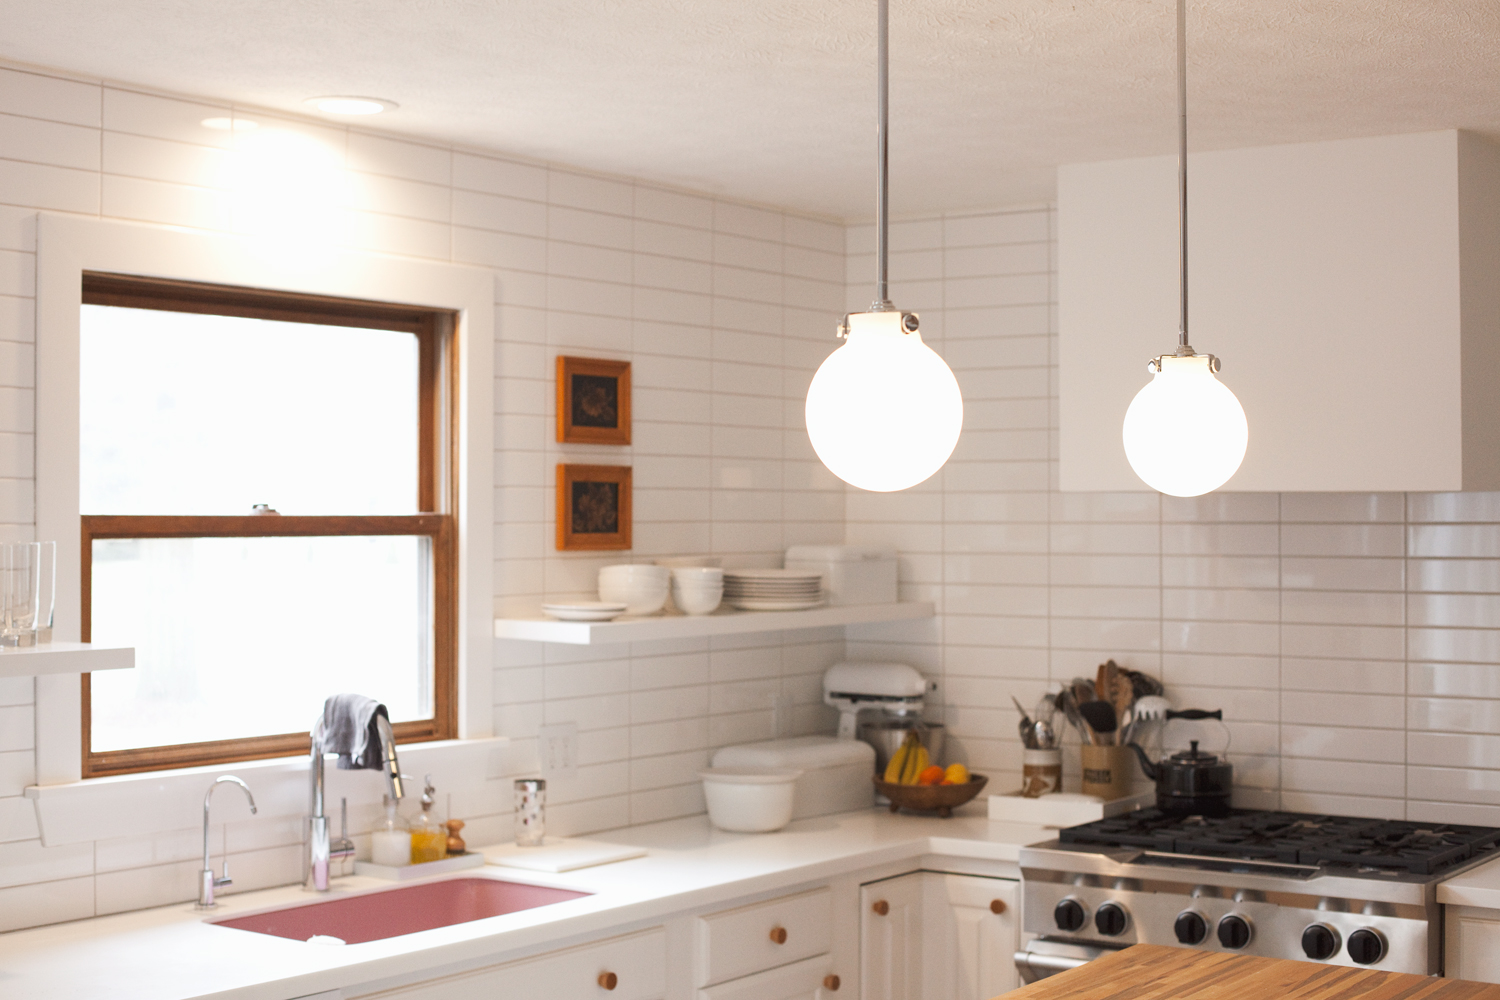 Everything you need to know about choosing lighting and light bulbs for your home